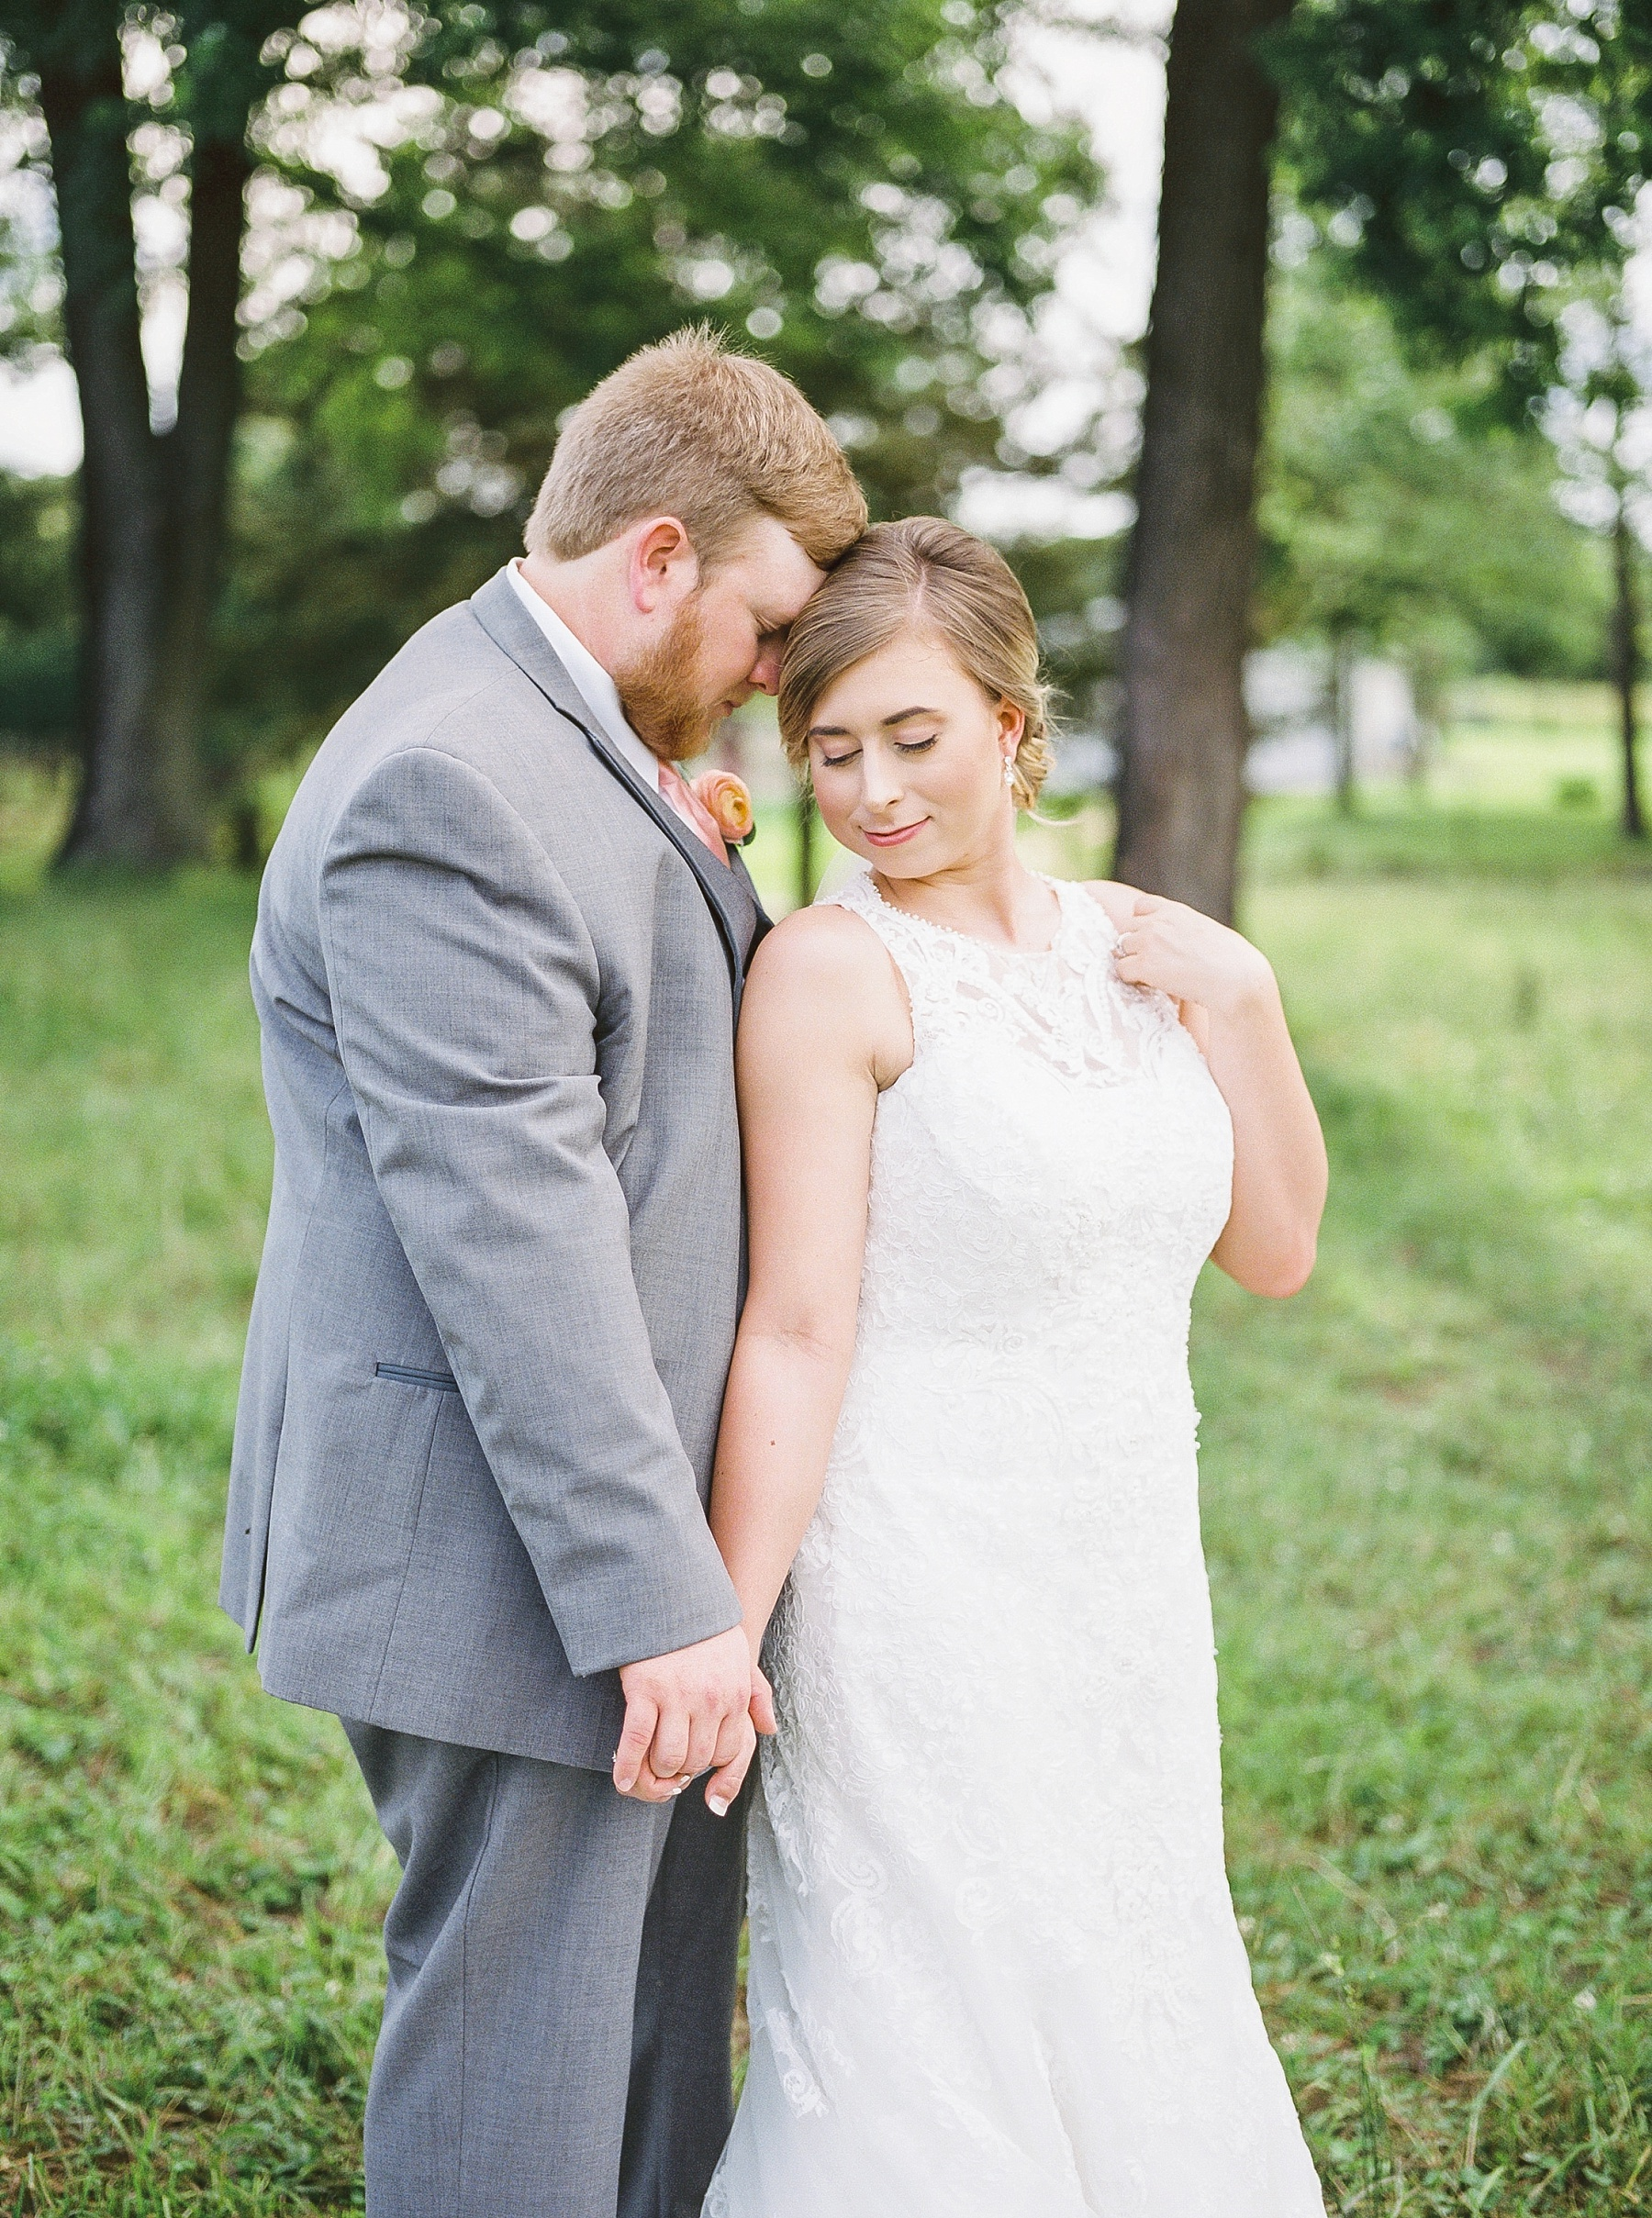 Peach and Dusty Blue Spring Wedding in Rolling Hills of Mid Missouri by Kelsi Kliethermes Photography Best Missouri and Maui Wedding Photographer_0045.jpg